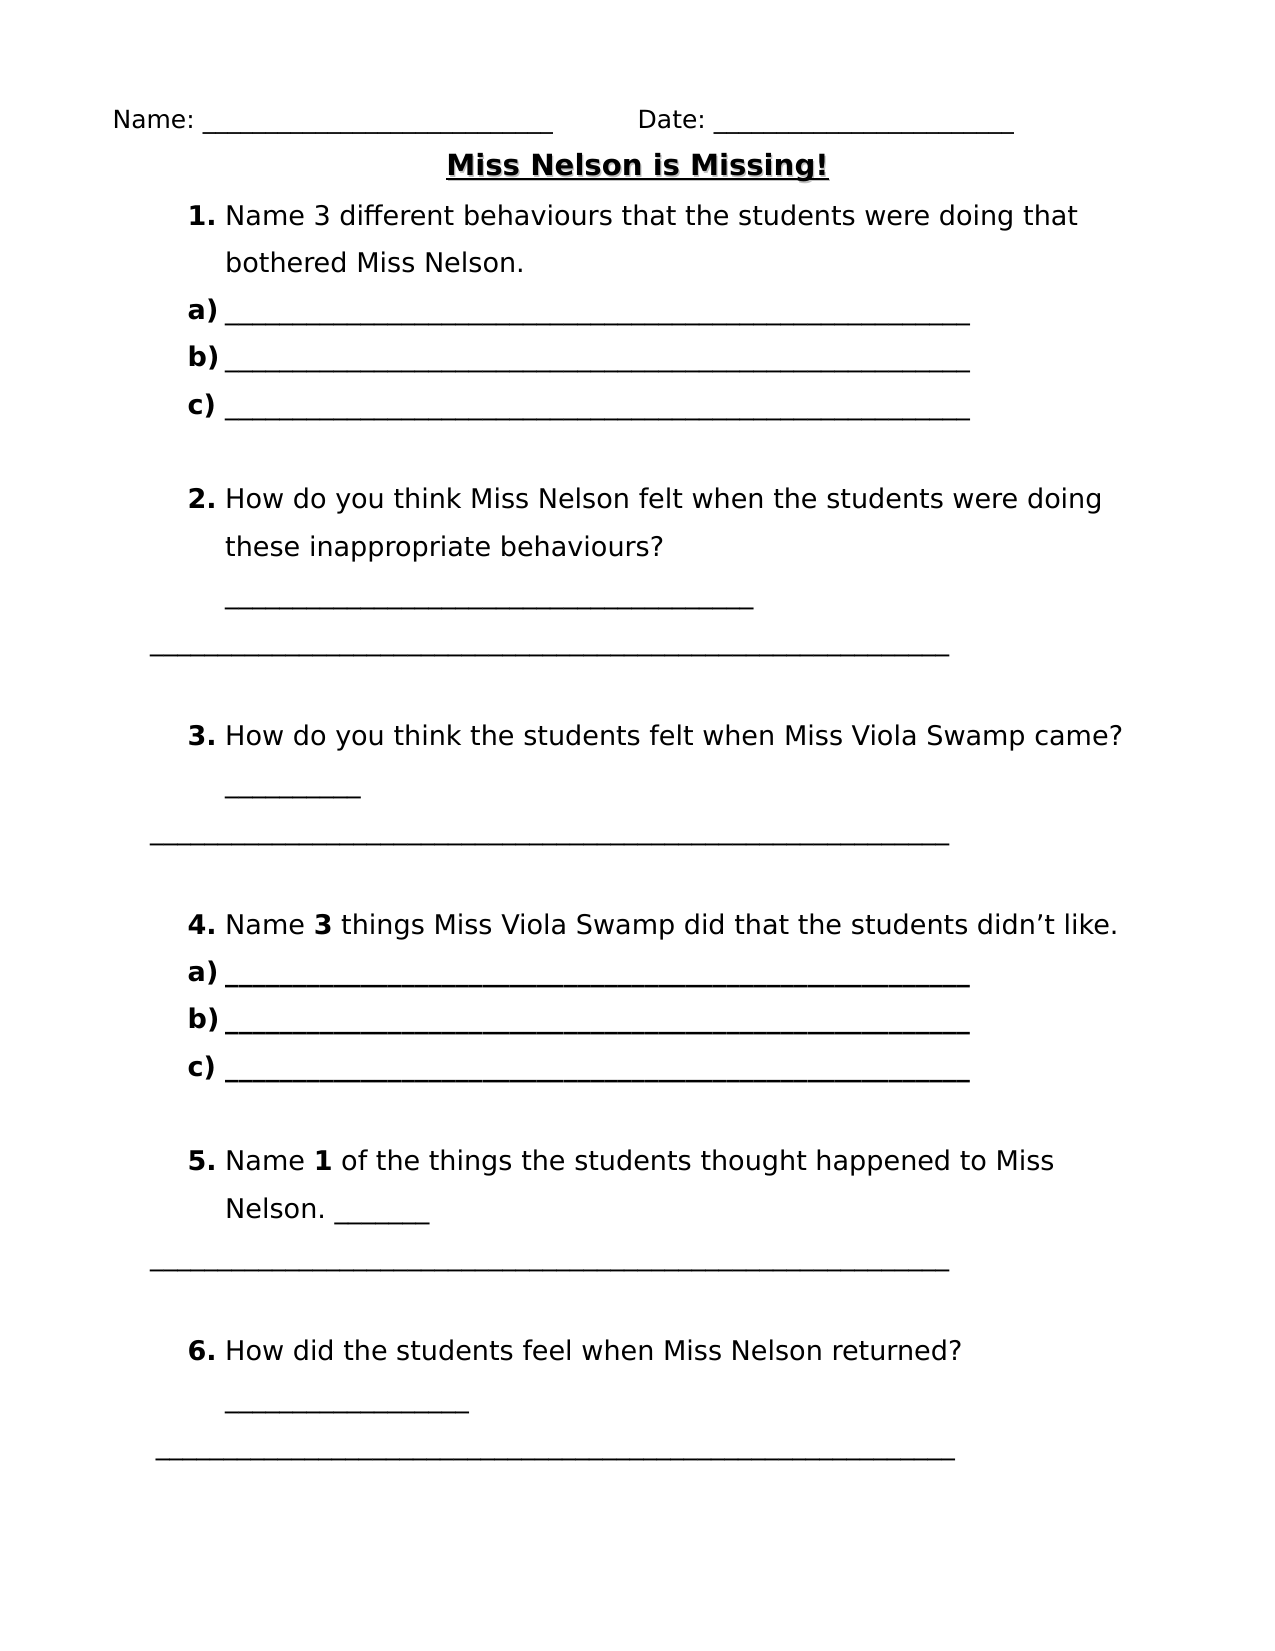 Miss Nelson is Missing Questions Resource Preview